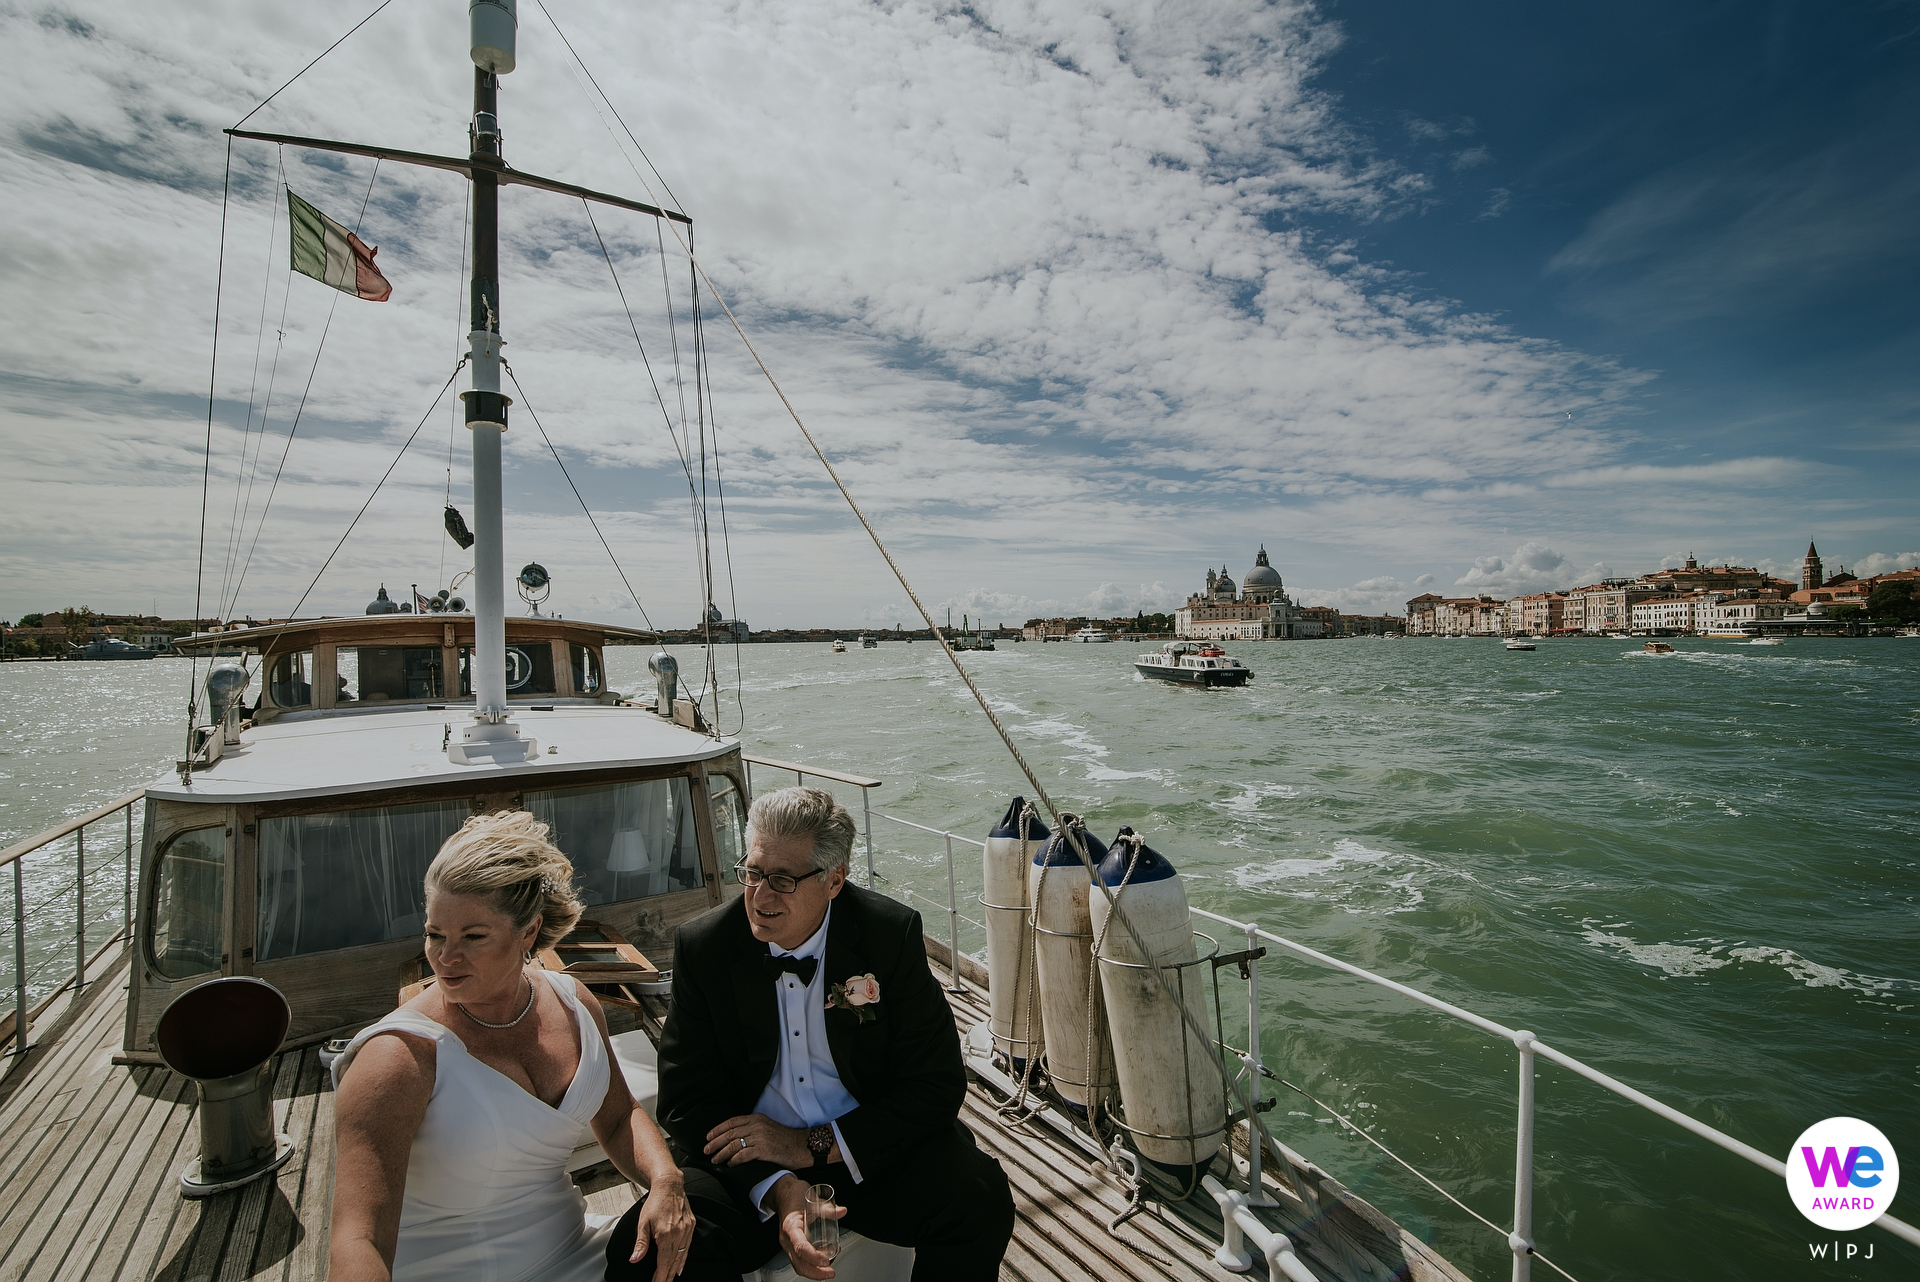 Silver Yacht, Venice Lagoon - Italy Elopement Photographers | The couple leaves for the private sailing cruise that will take them away all day